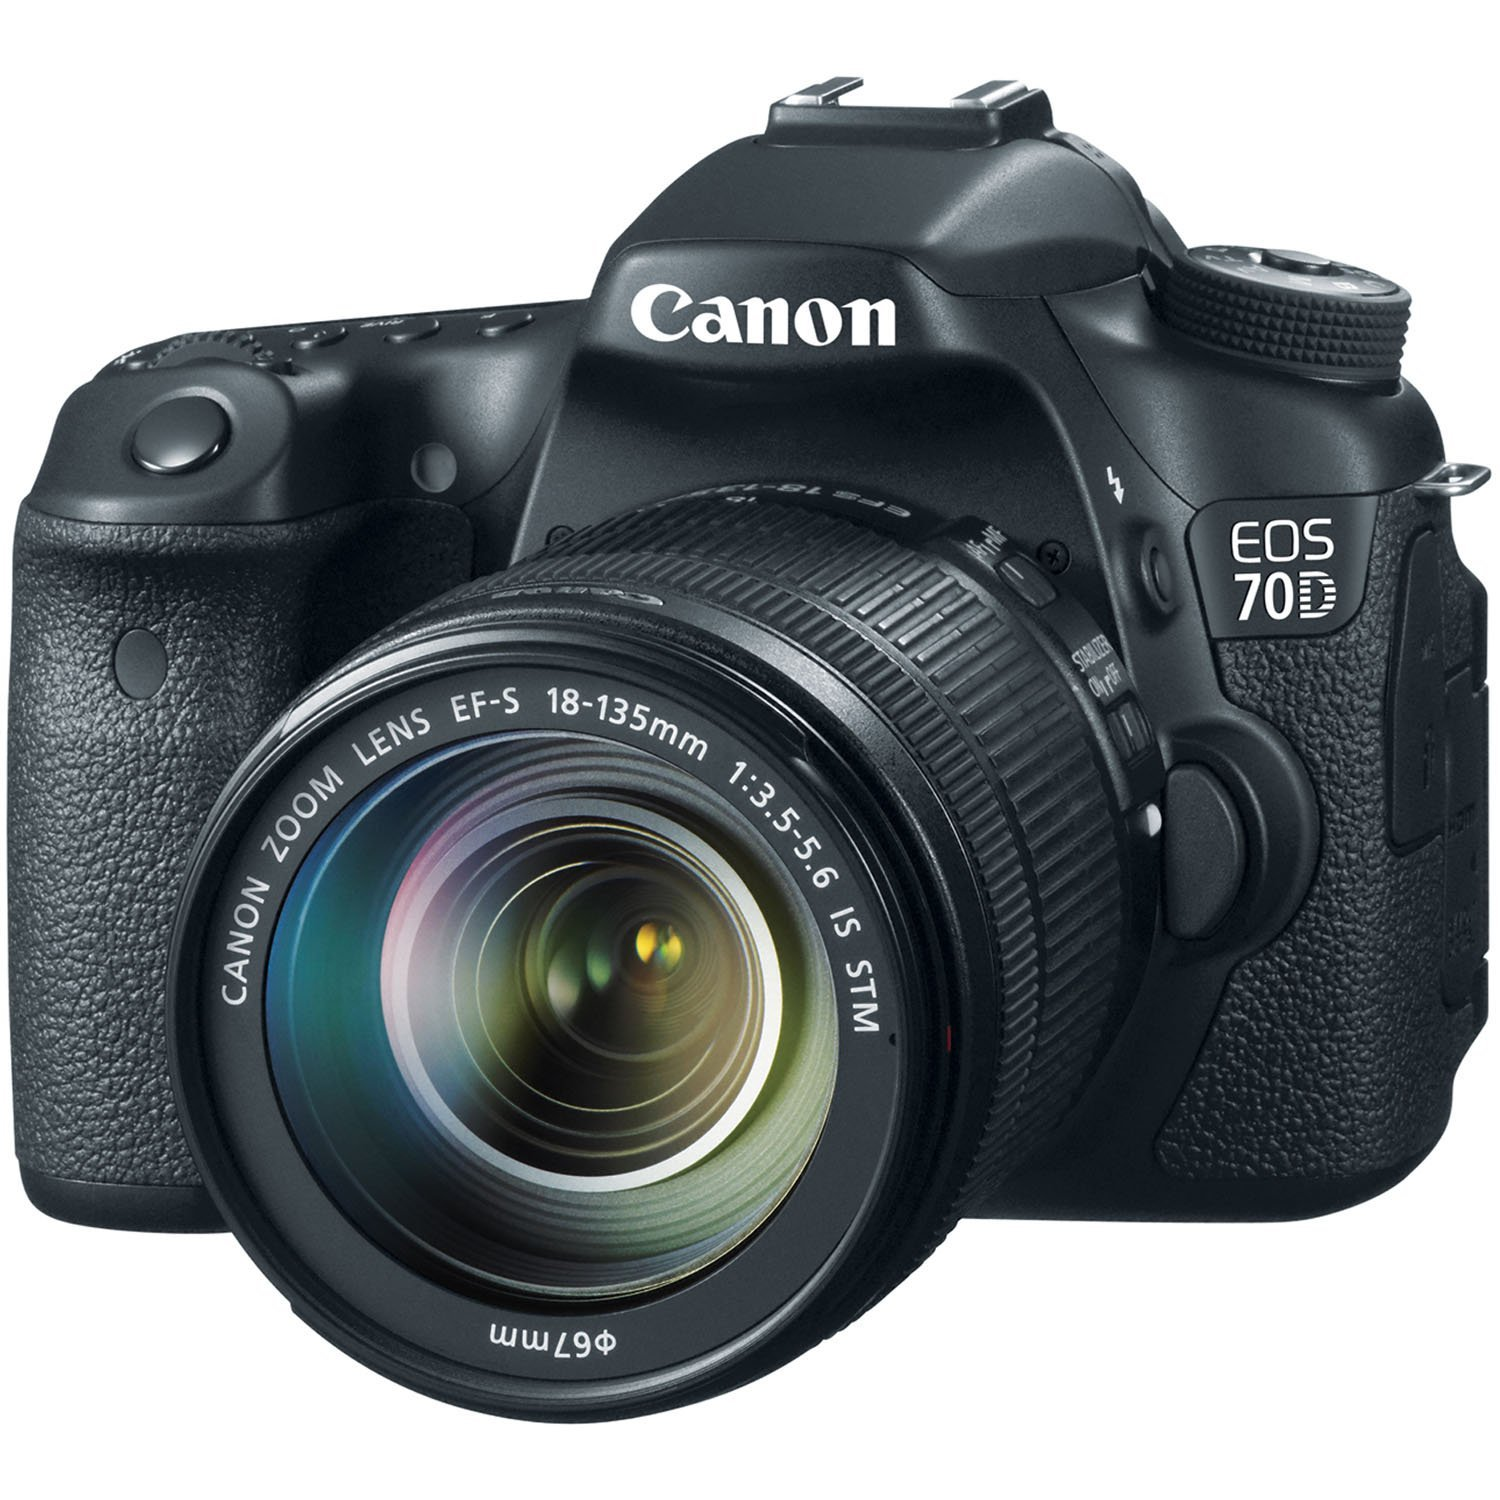 Best dSLR camera for Parents